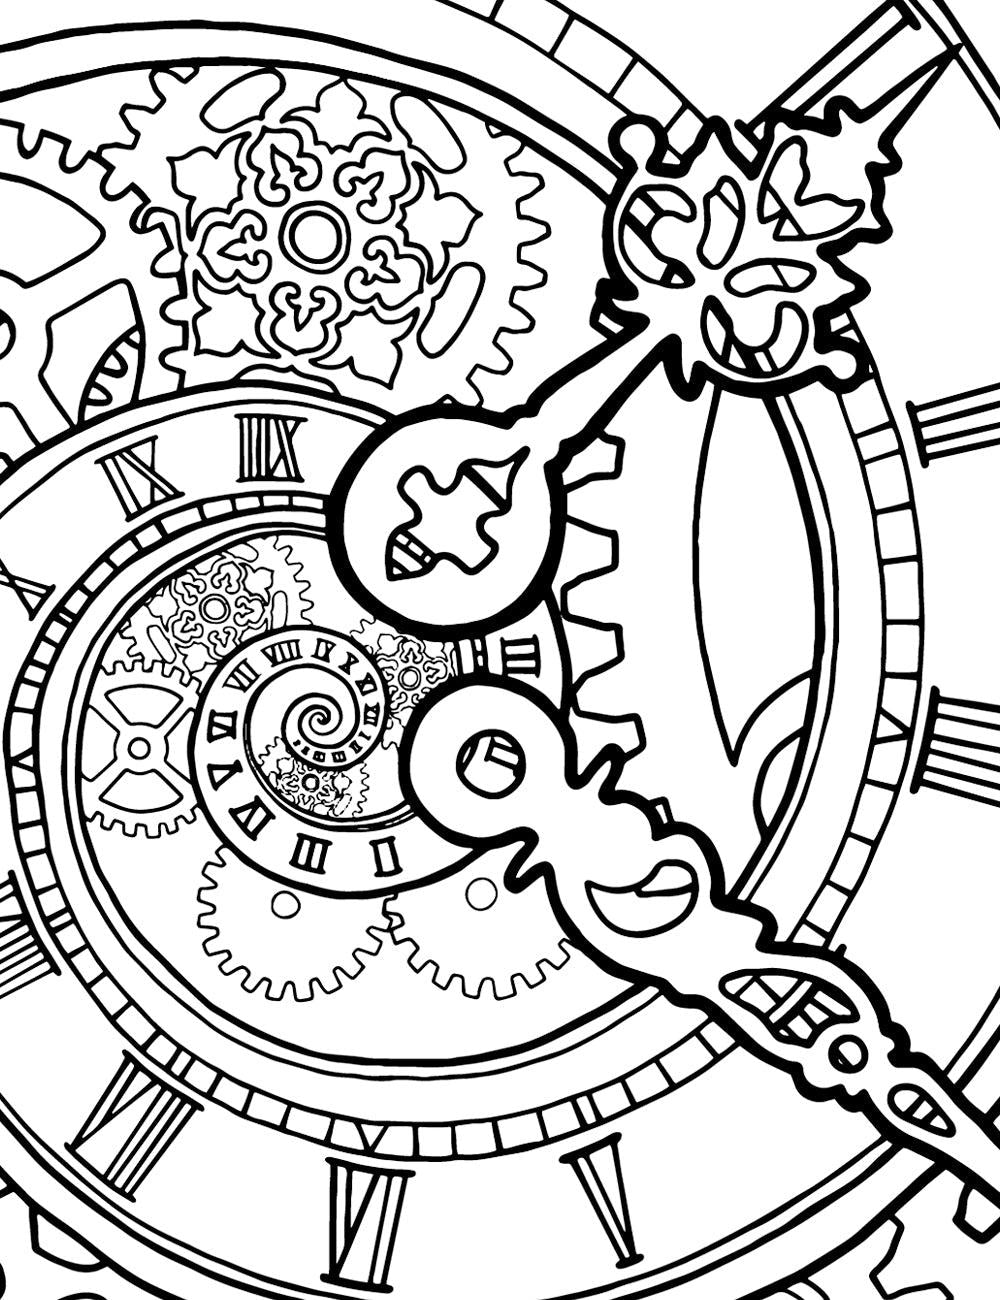 Asylum Coloring Book Page: Spiral Clock